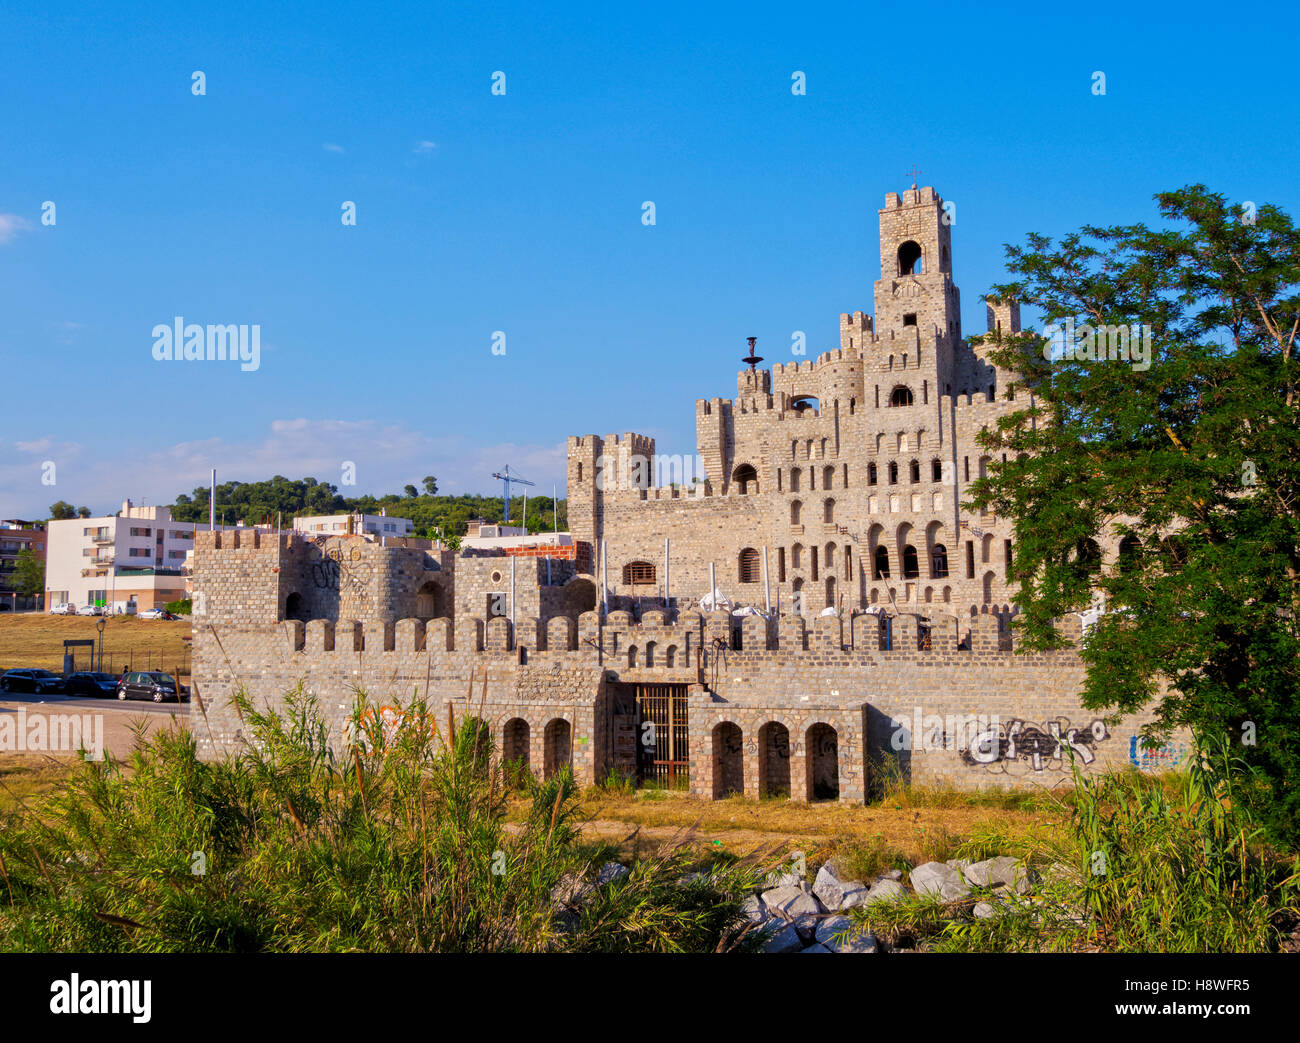 Spain, Catalonia, Barcelona Province, View of the Les Fonts Castle. - Stock Image